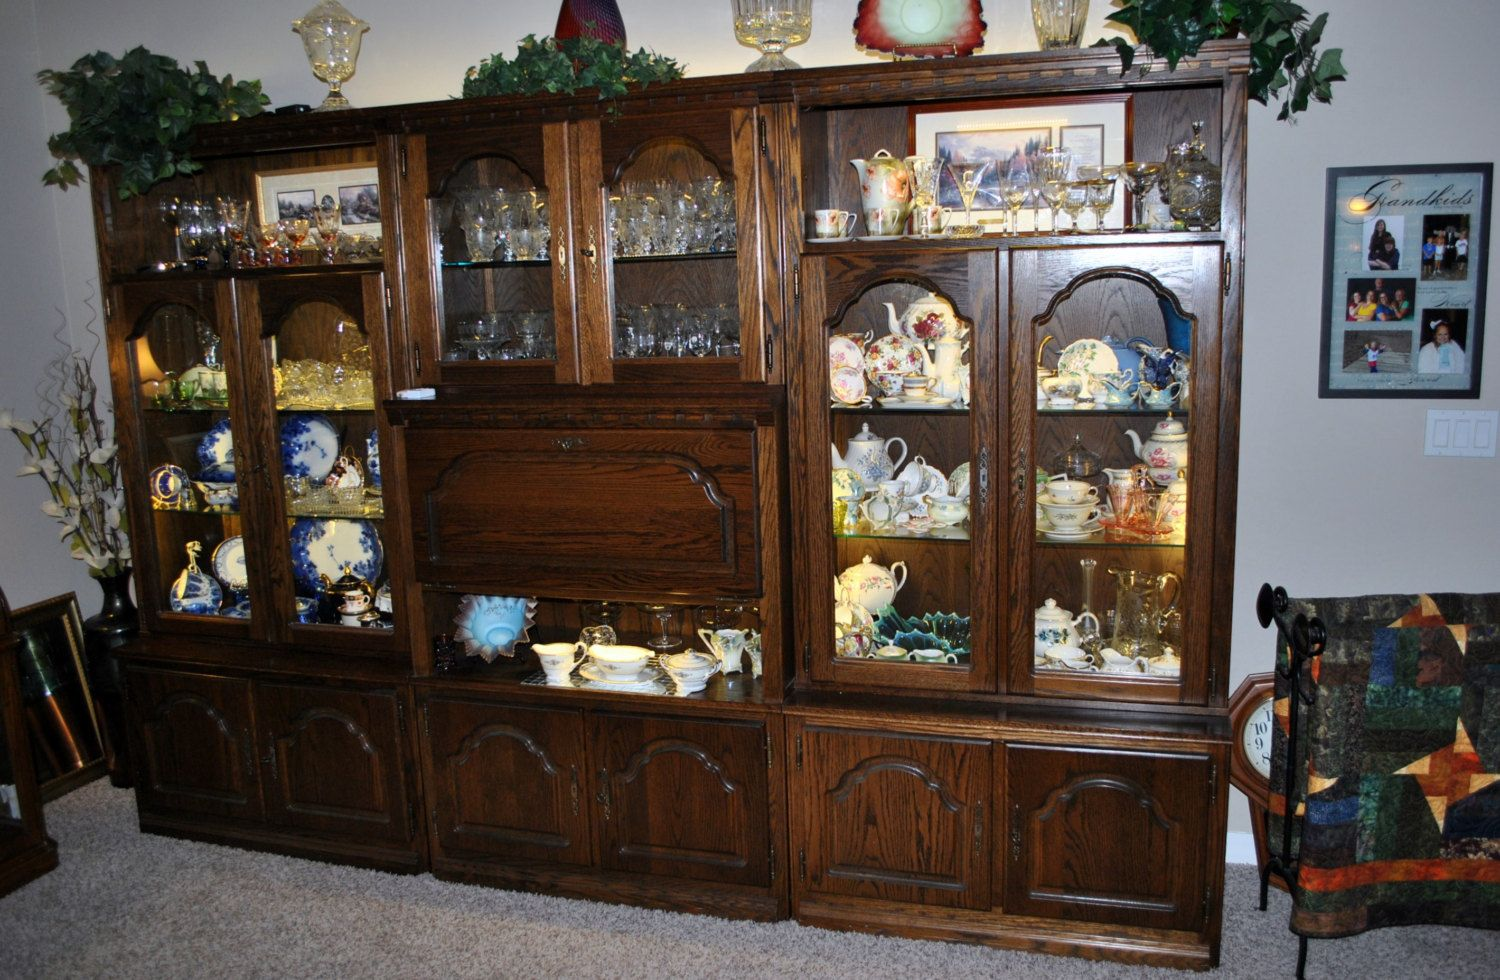 German Made Shrunk Wall Unit Solid Oak In Six Sections Drawer And Shelf Storage Fully Lighted With Led Wall Unit Built Ins German Wall